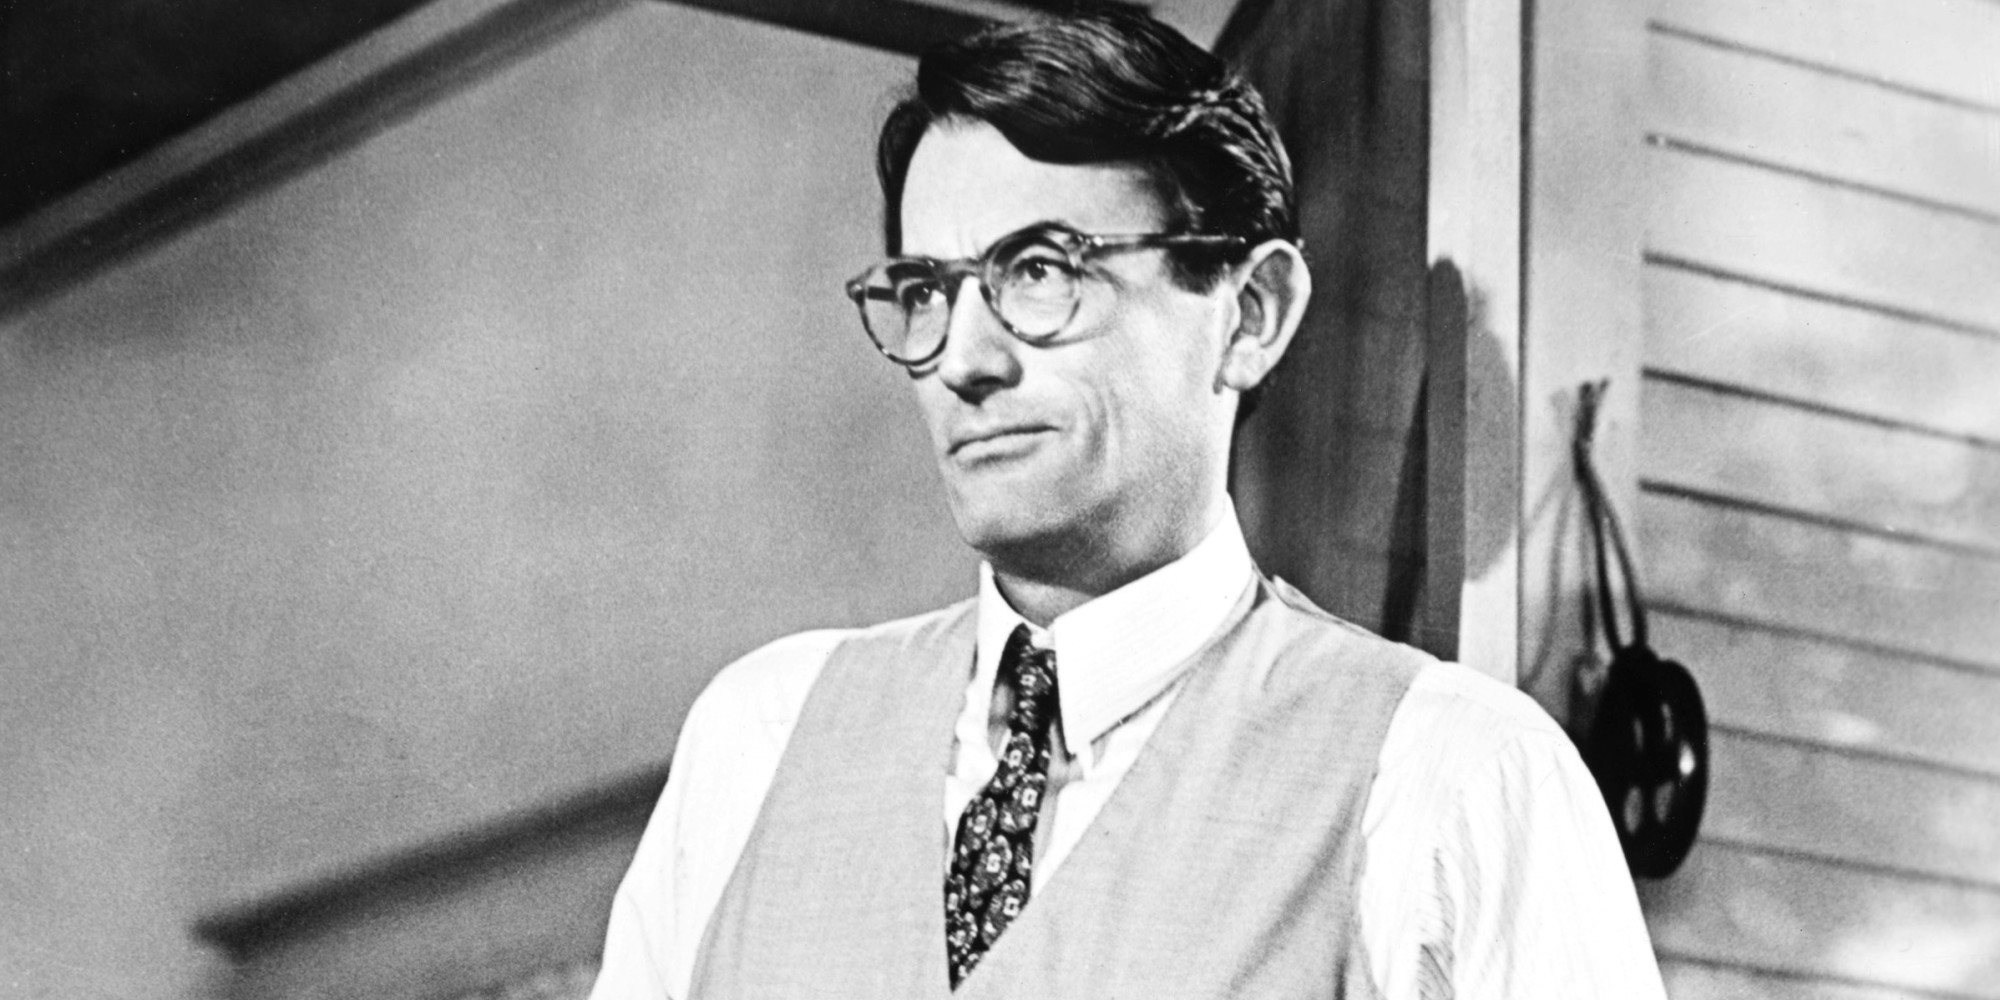 http://i.huffpost.com/gen/1622224/images/o-ATTICUS-FINCH-TO-KILL-A-MOCKINGBIRD-facebook.jpg